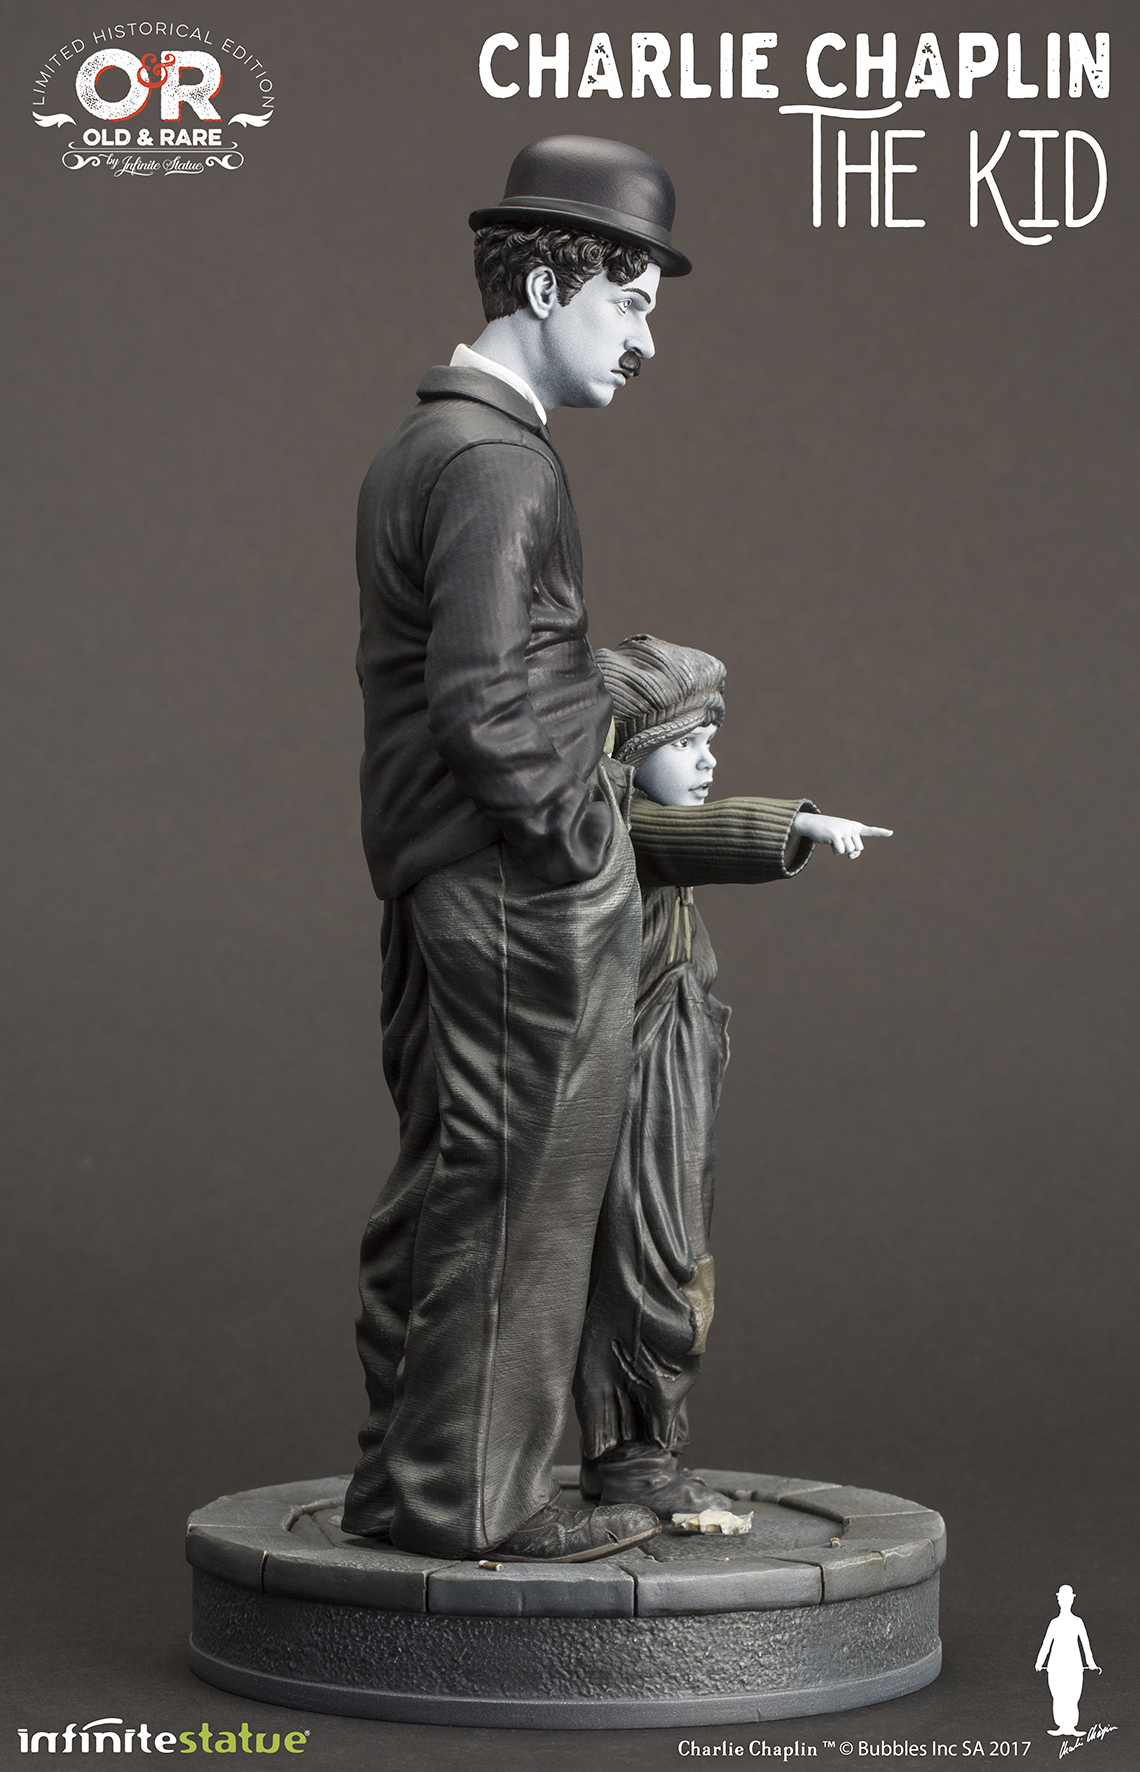 Charlie-Chaplin-O-Garoto-The-Kid-Infinite-Statue-06